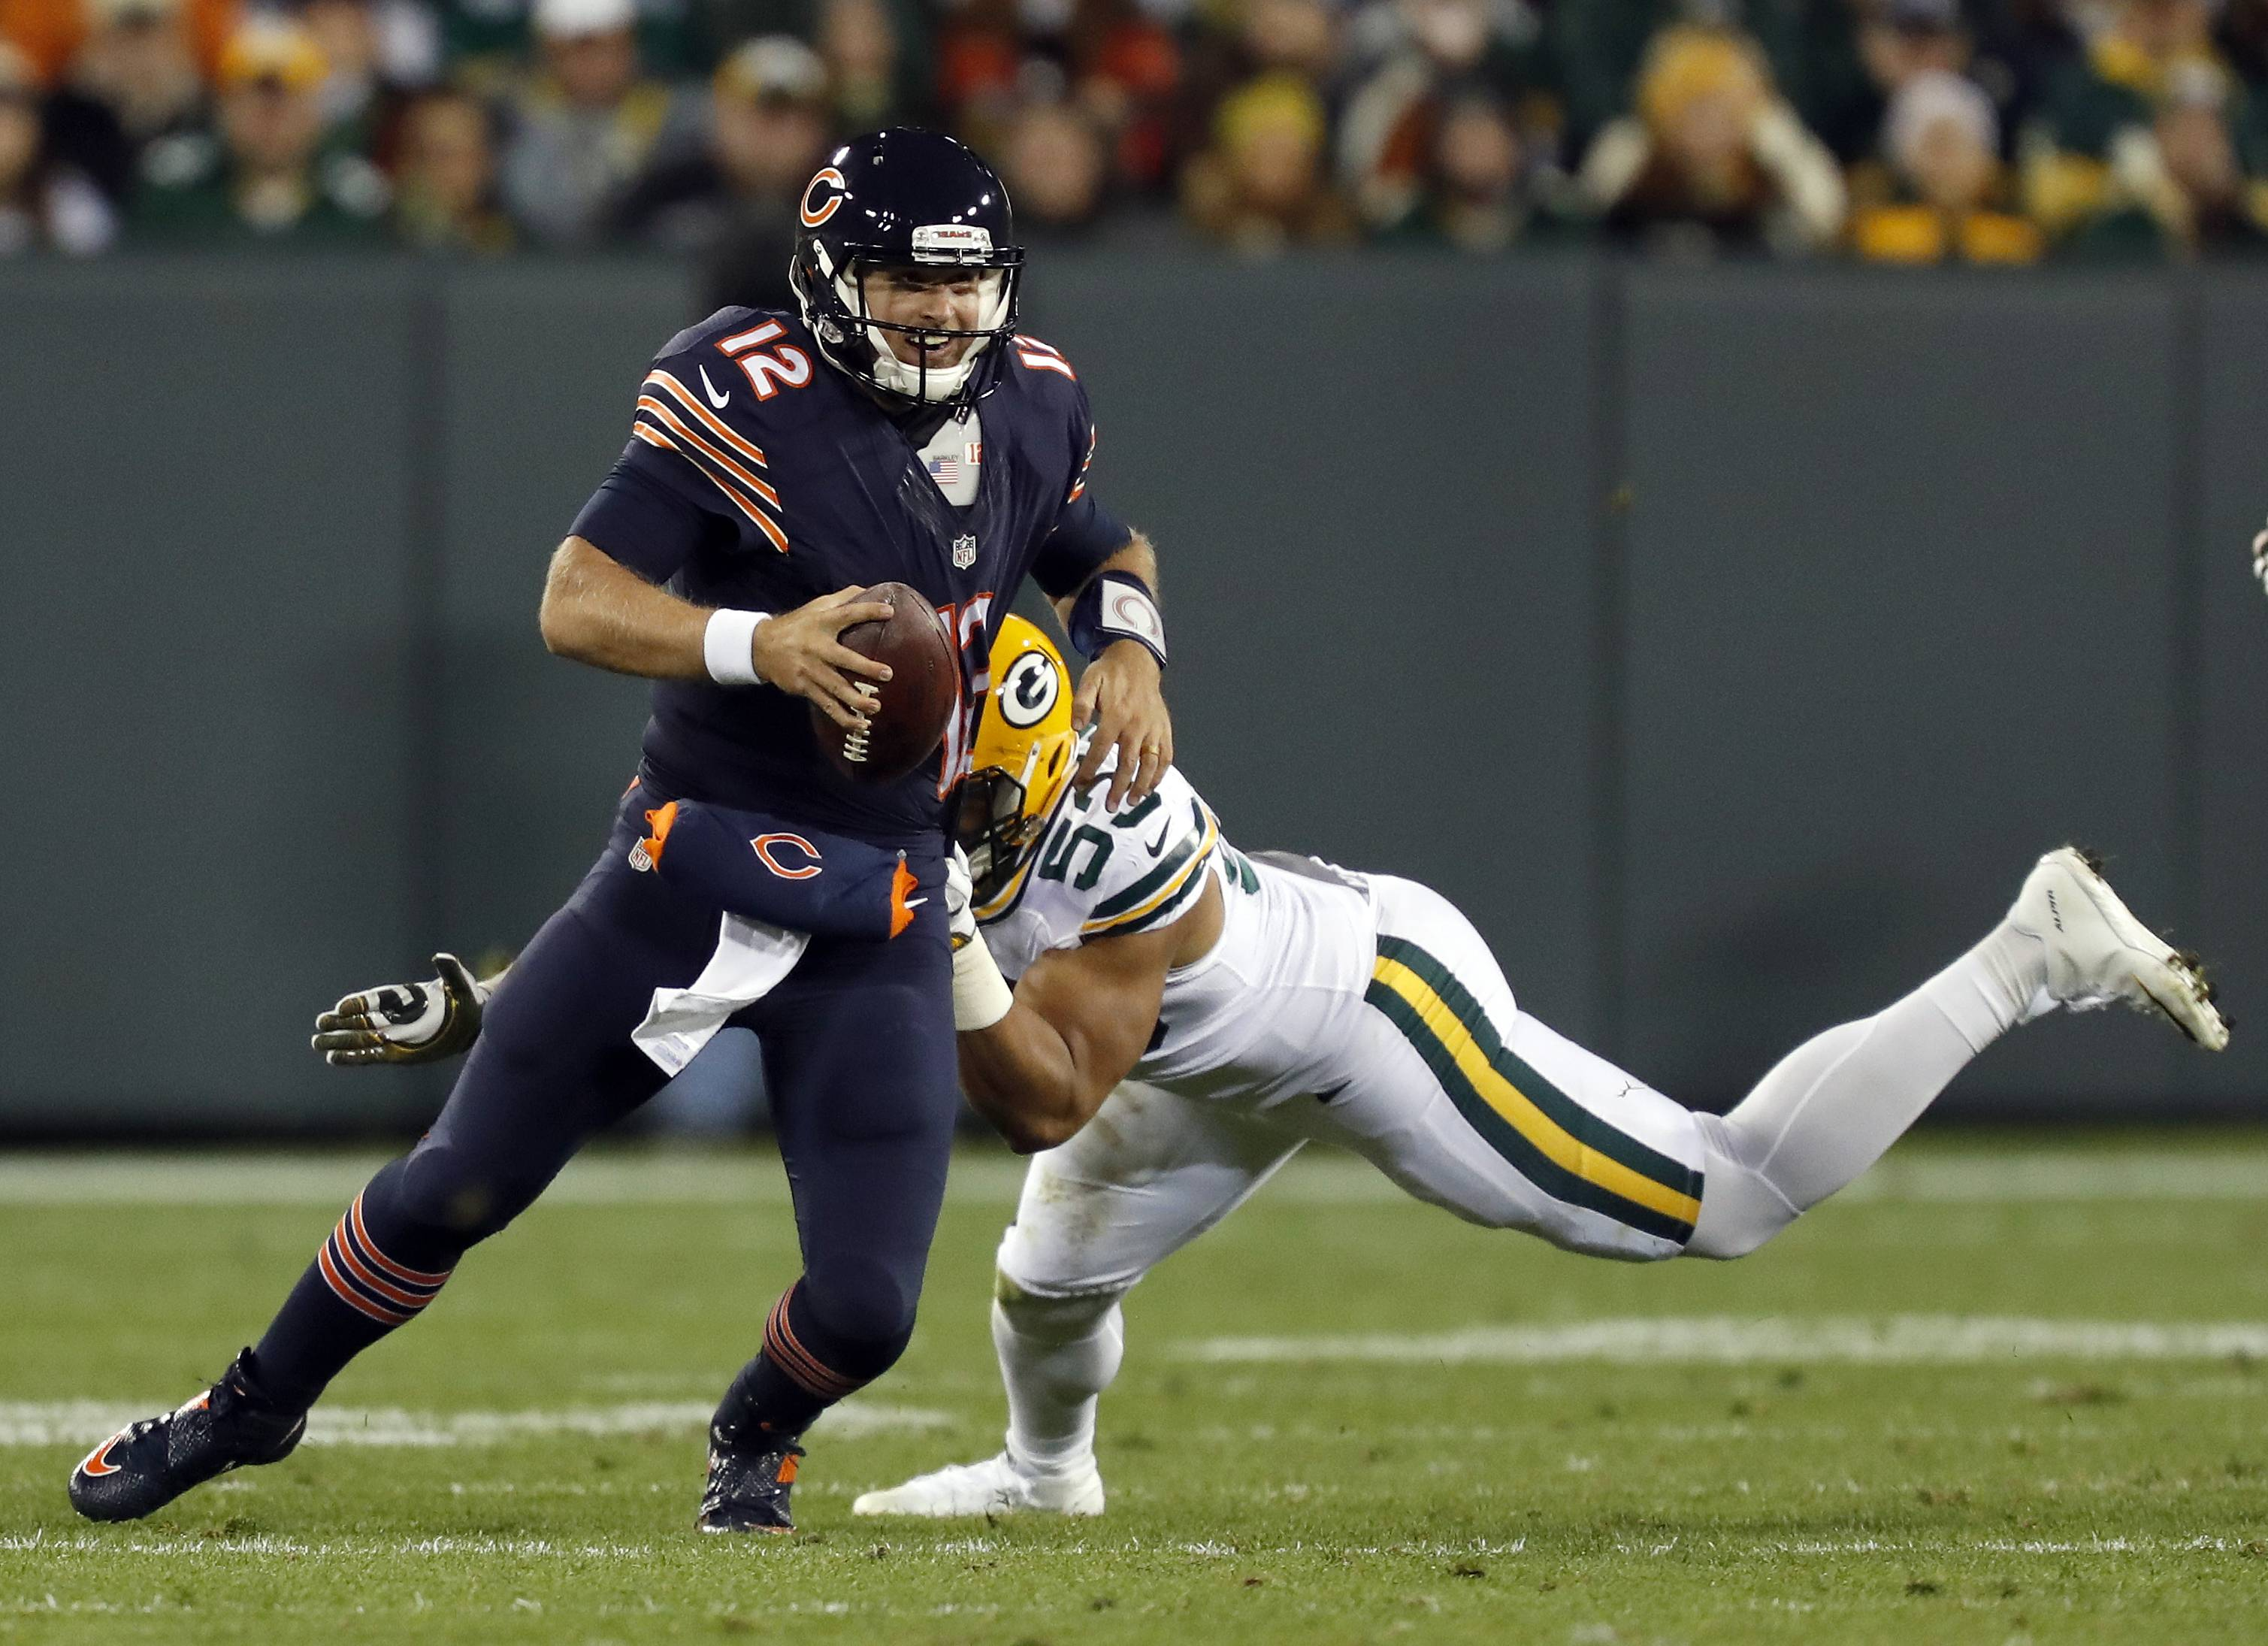 Cutler still not cleared, test of Vikings may fall to Barkley